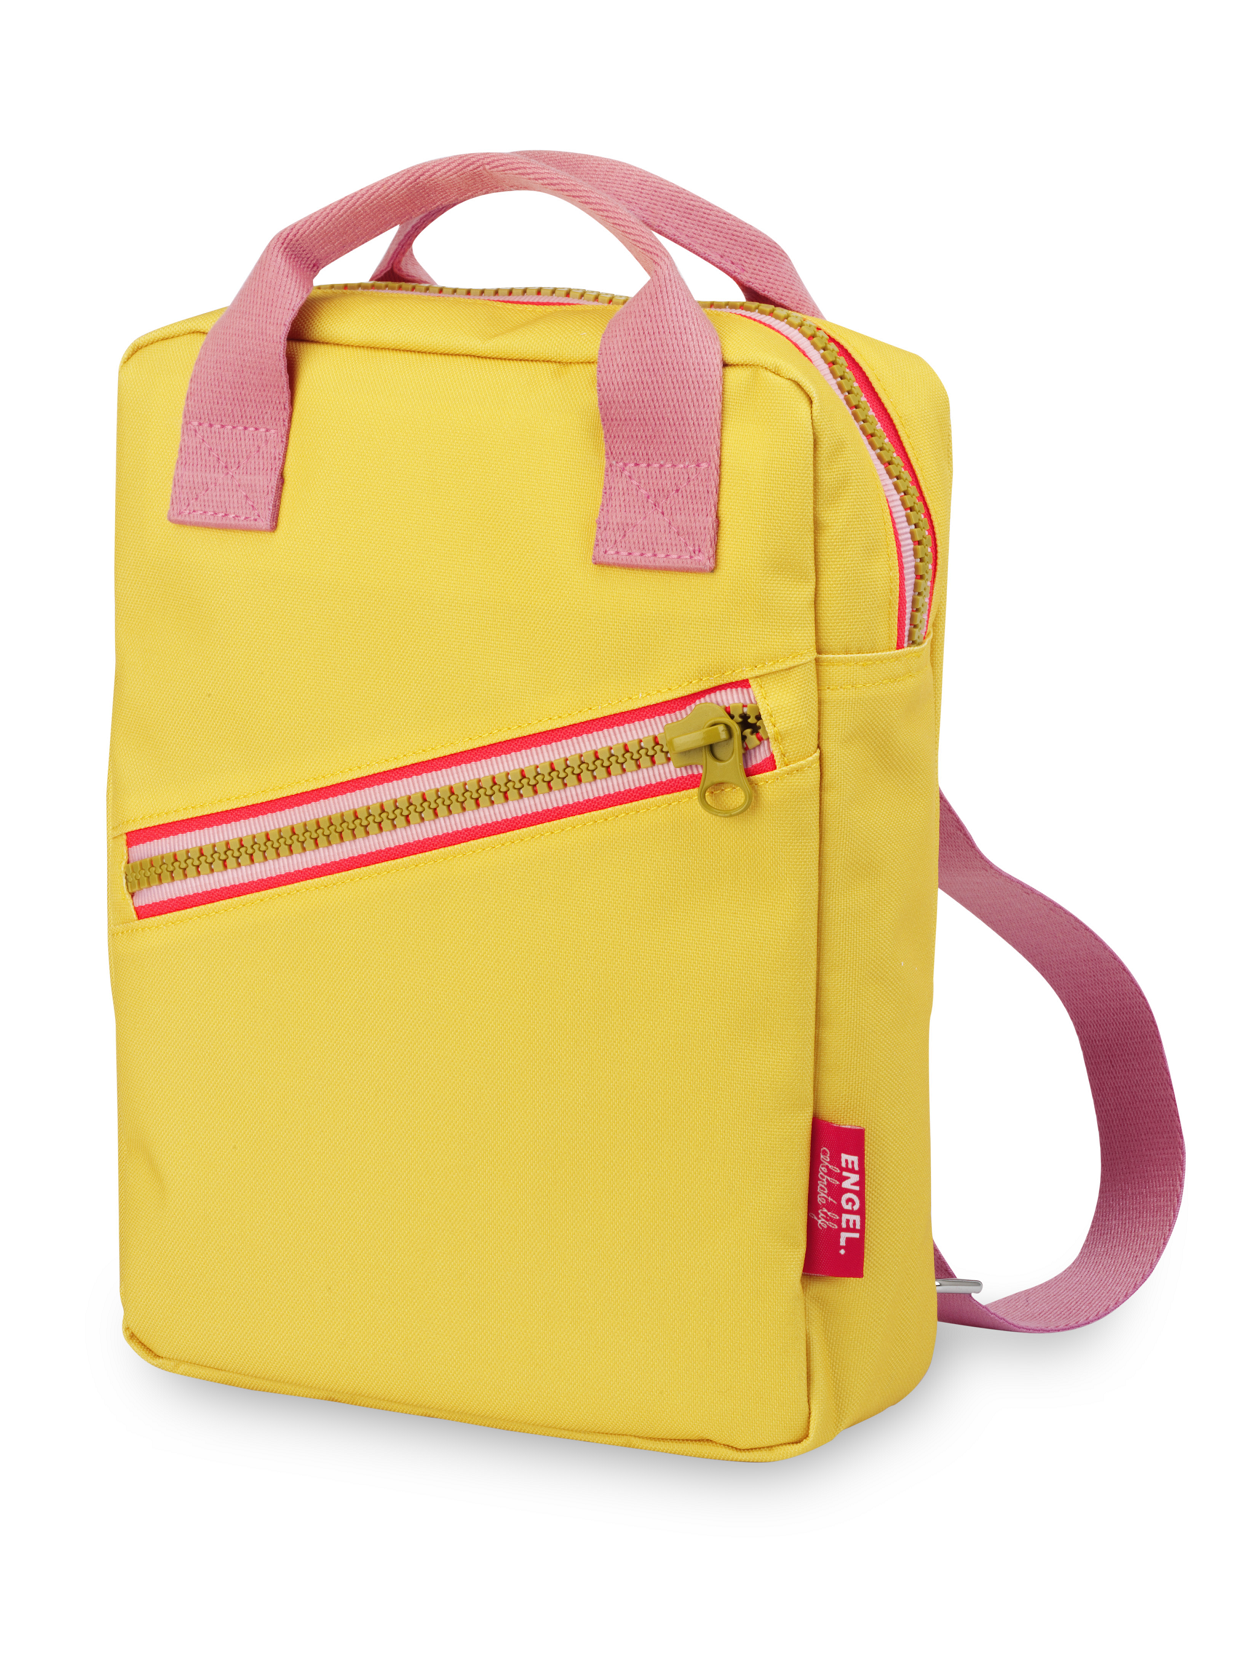 Engel rugzak small zipper Yellow